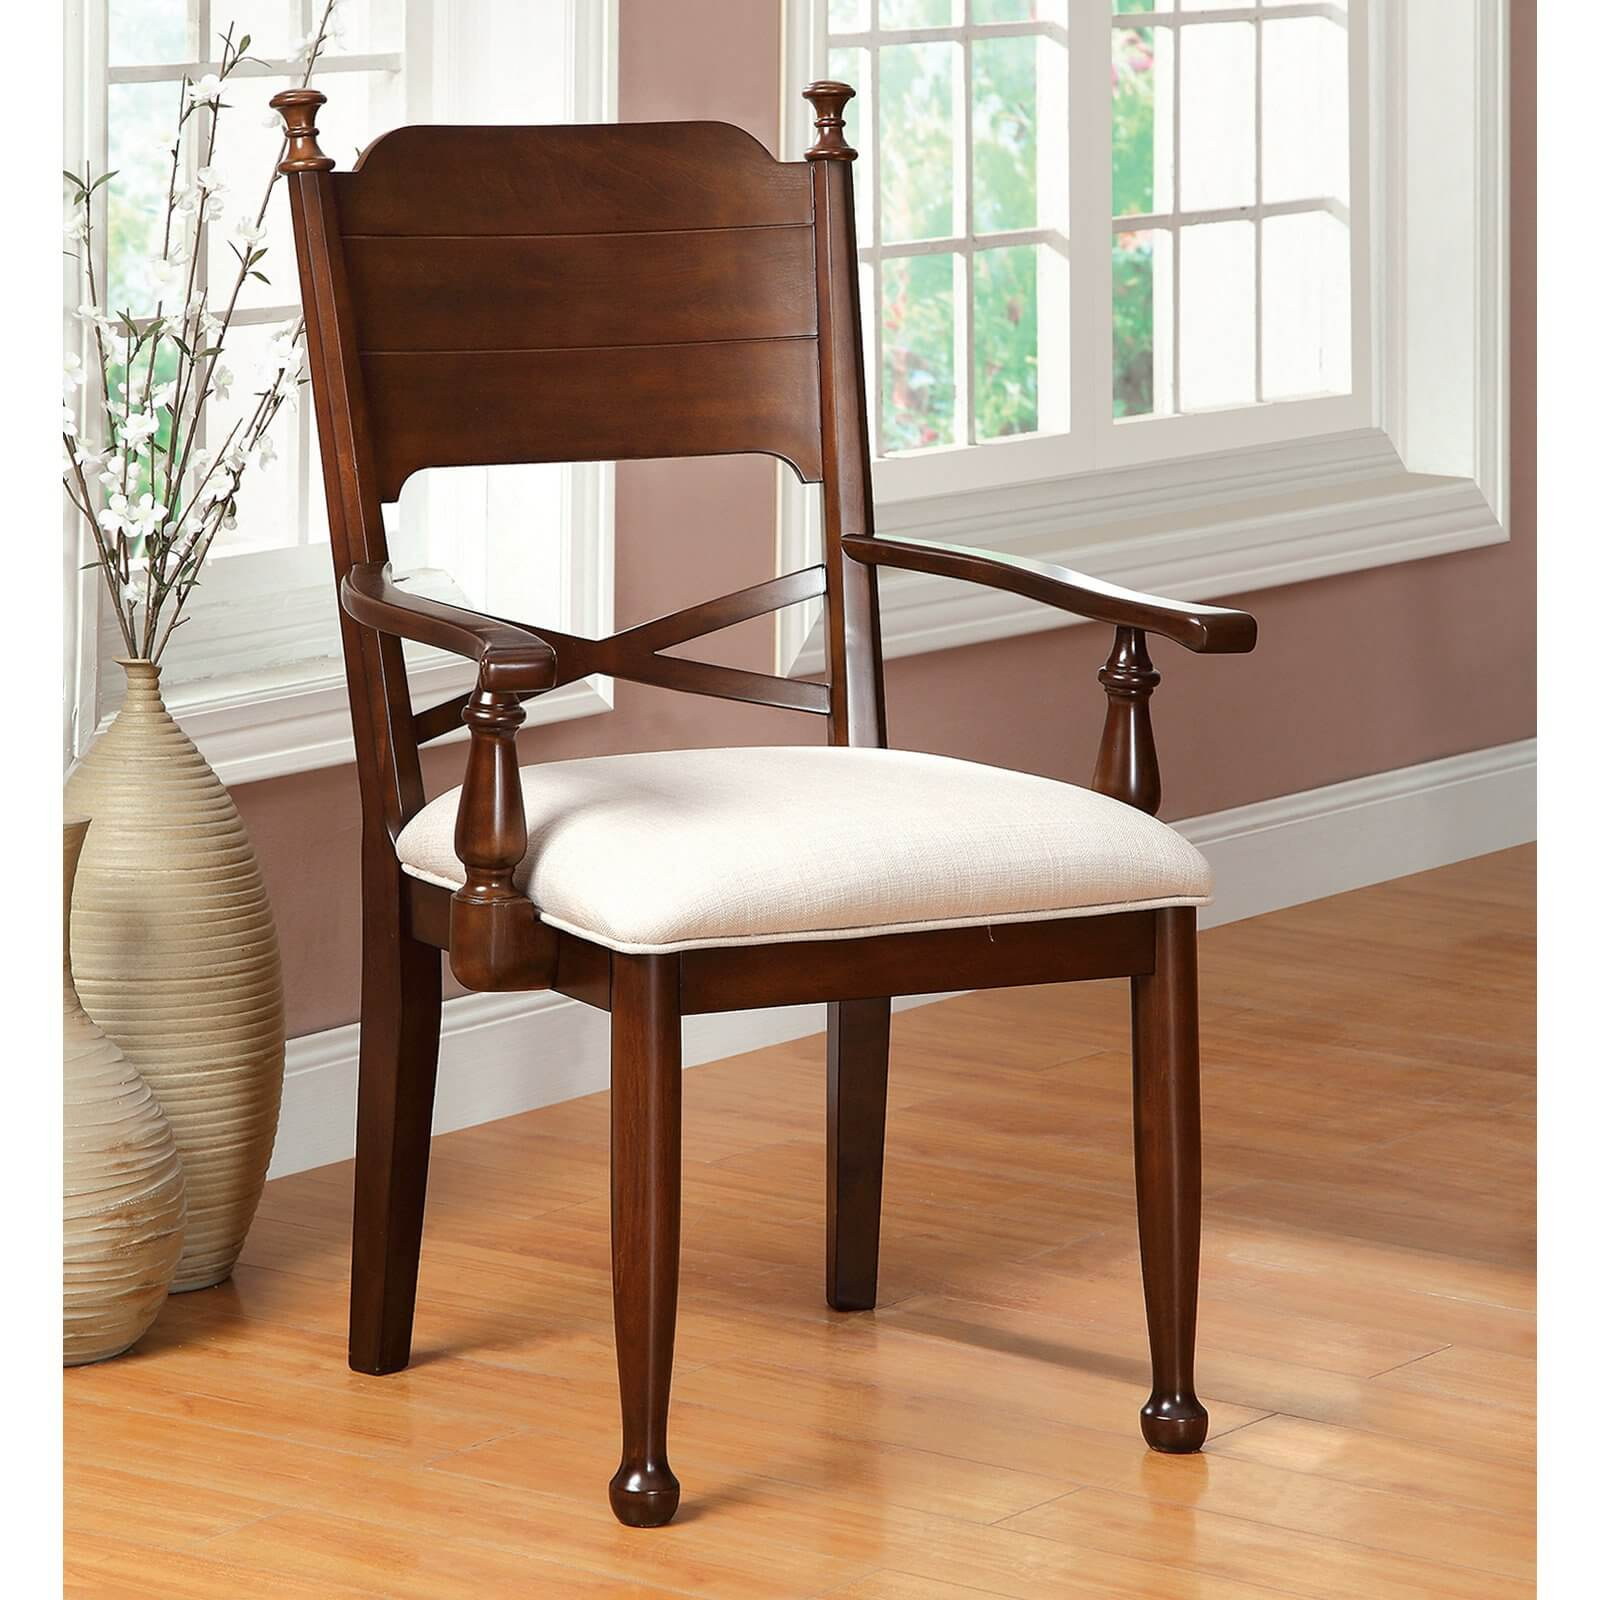 dining chair styles chart high chairs at babies r us 19 types of room crucial buying guide